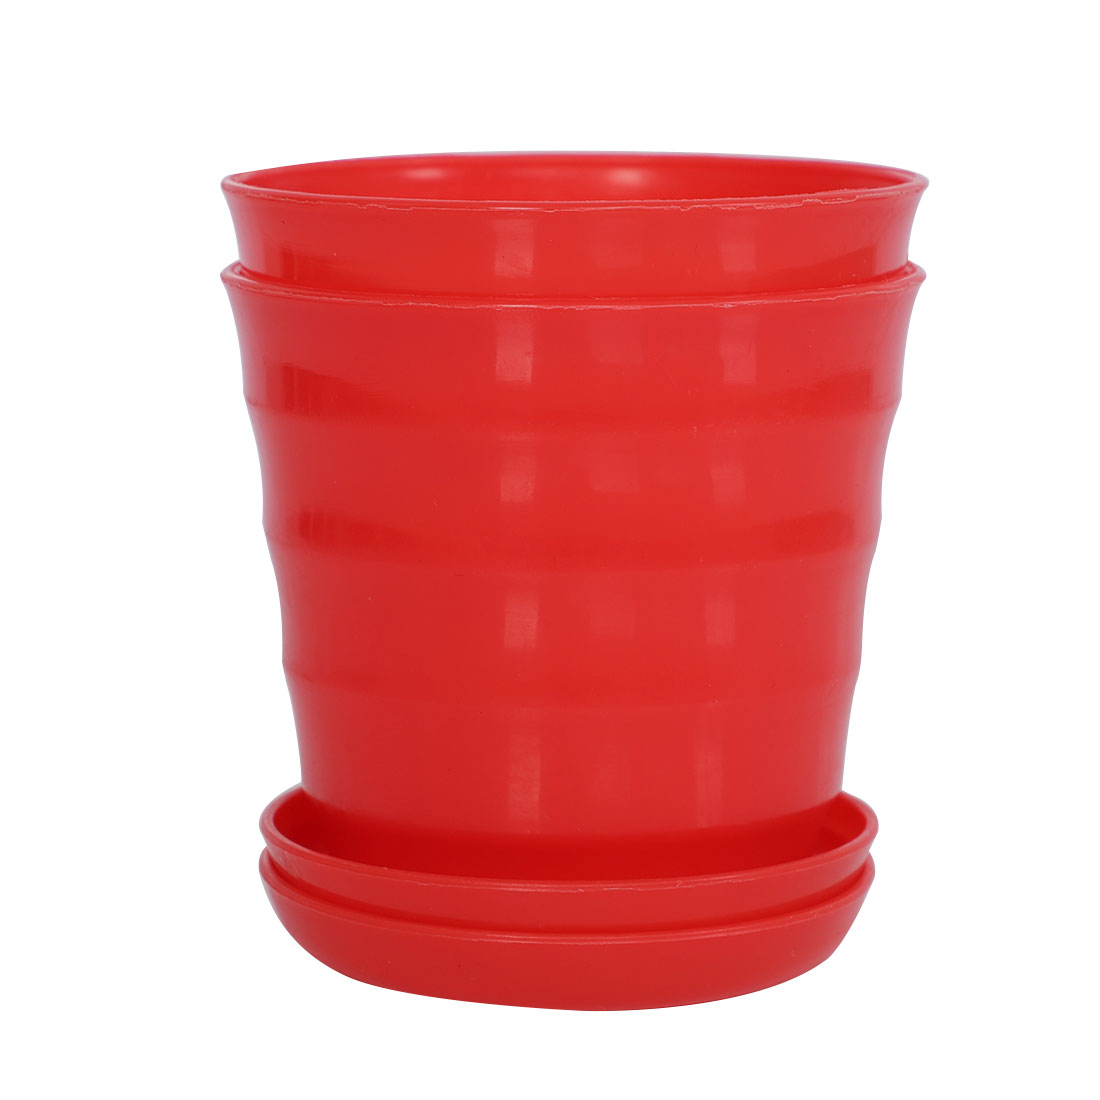 Apartment Desktop Plastic Round Cactus Plant Flower Seed Pot Tray Holder Red 2pcs